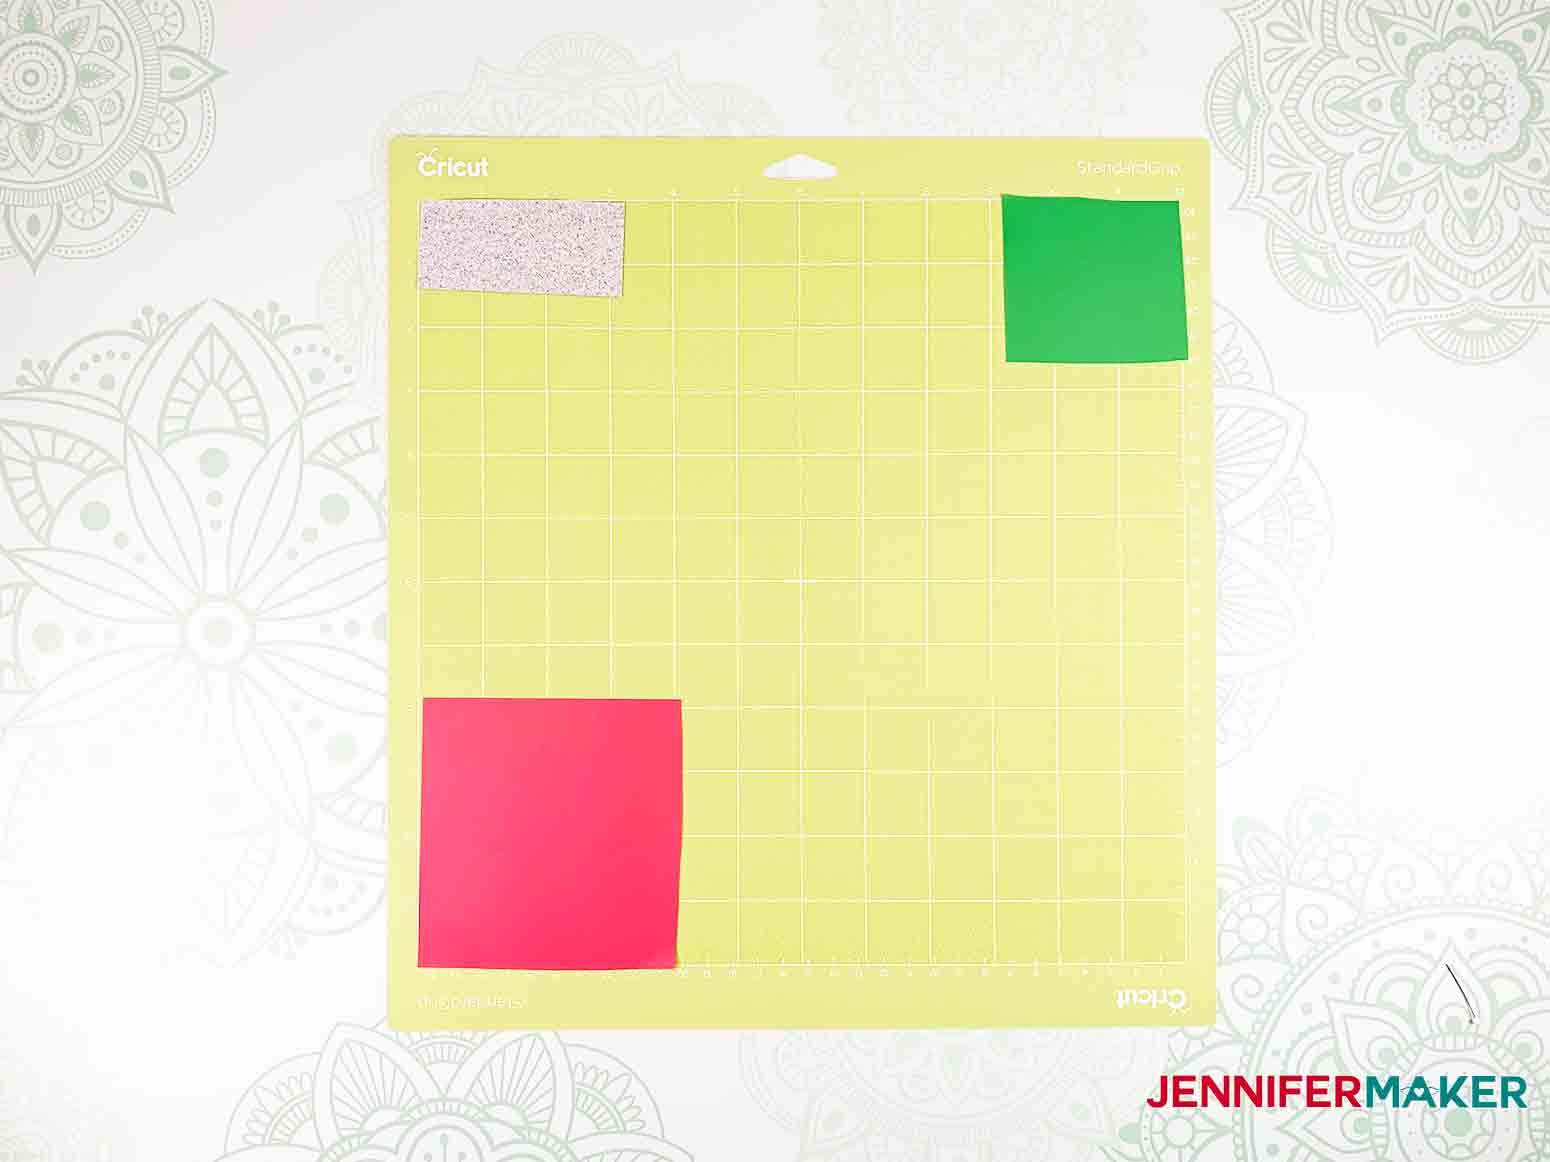 Festive-Holiday-Wine-Totes-JenniferMaker-different-color-vinyl-on-one-mat